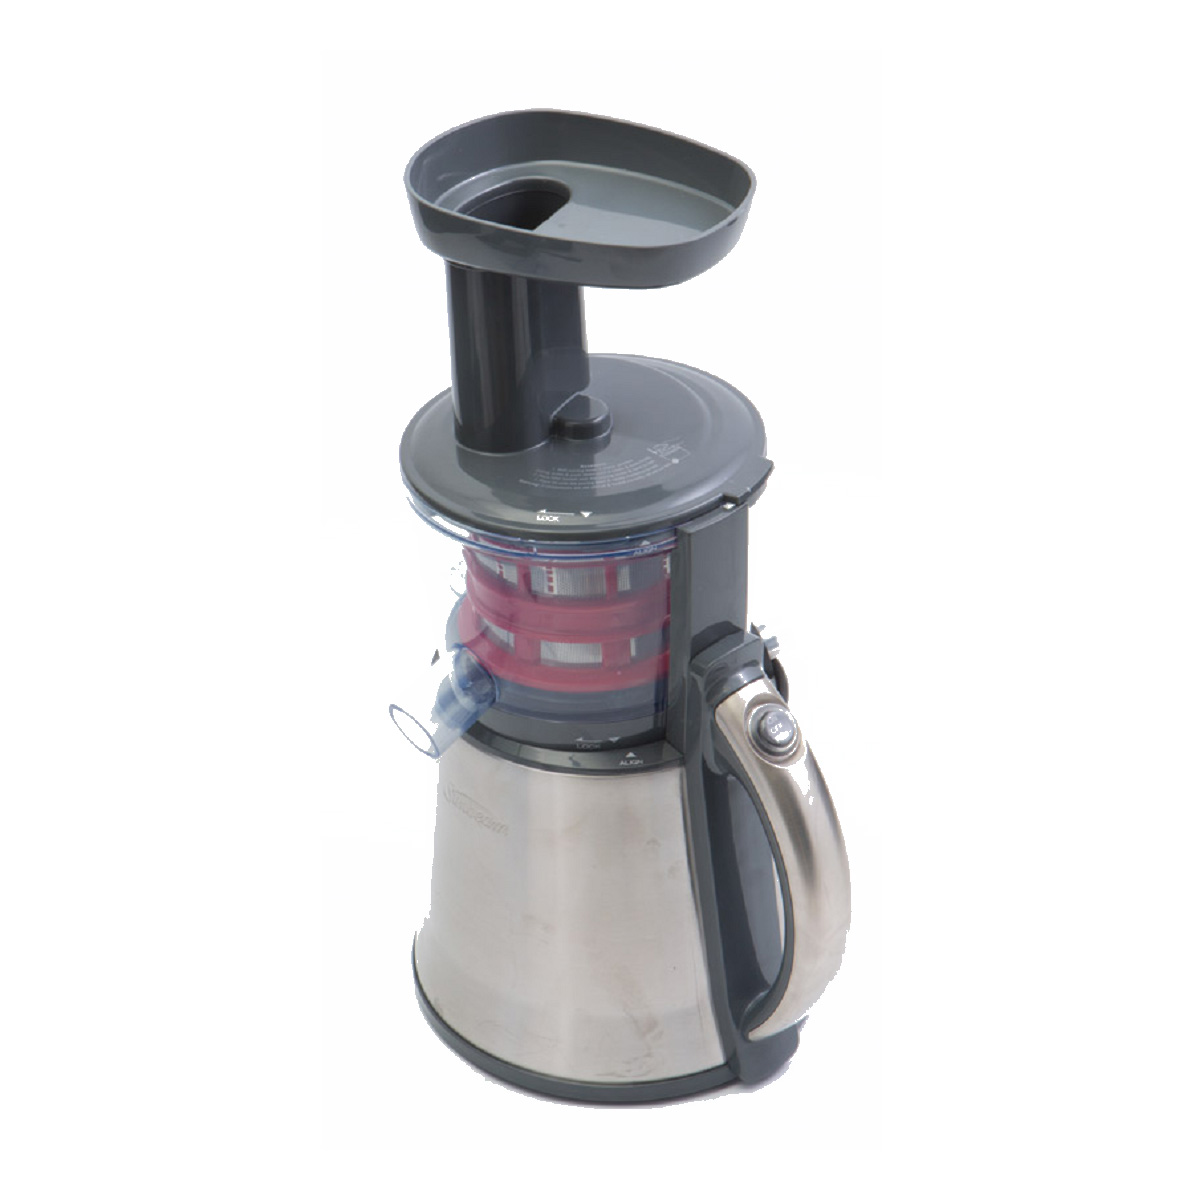 Je9000 Slow Juicer Stainless Steel : Sunbeam JE9000 Slow Juicer Home Clearance